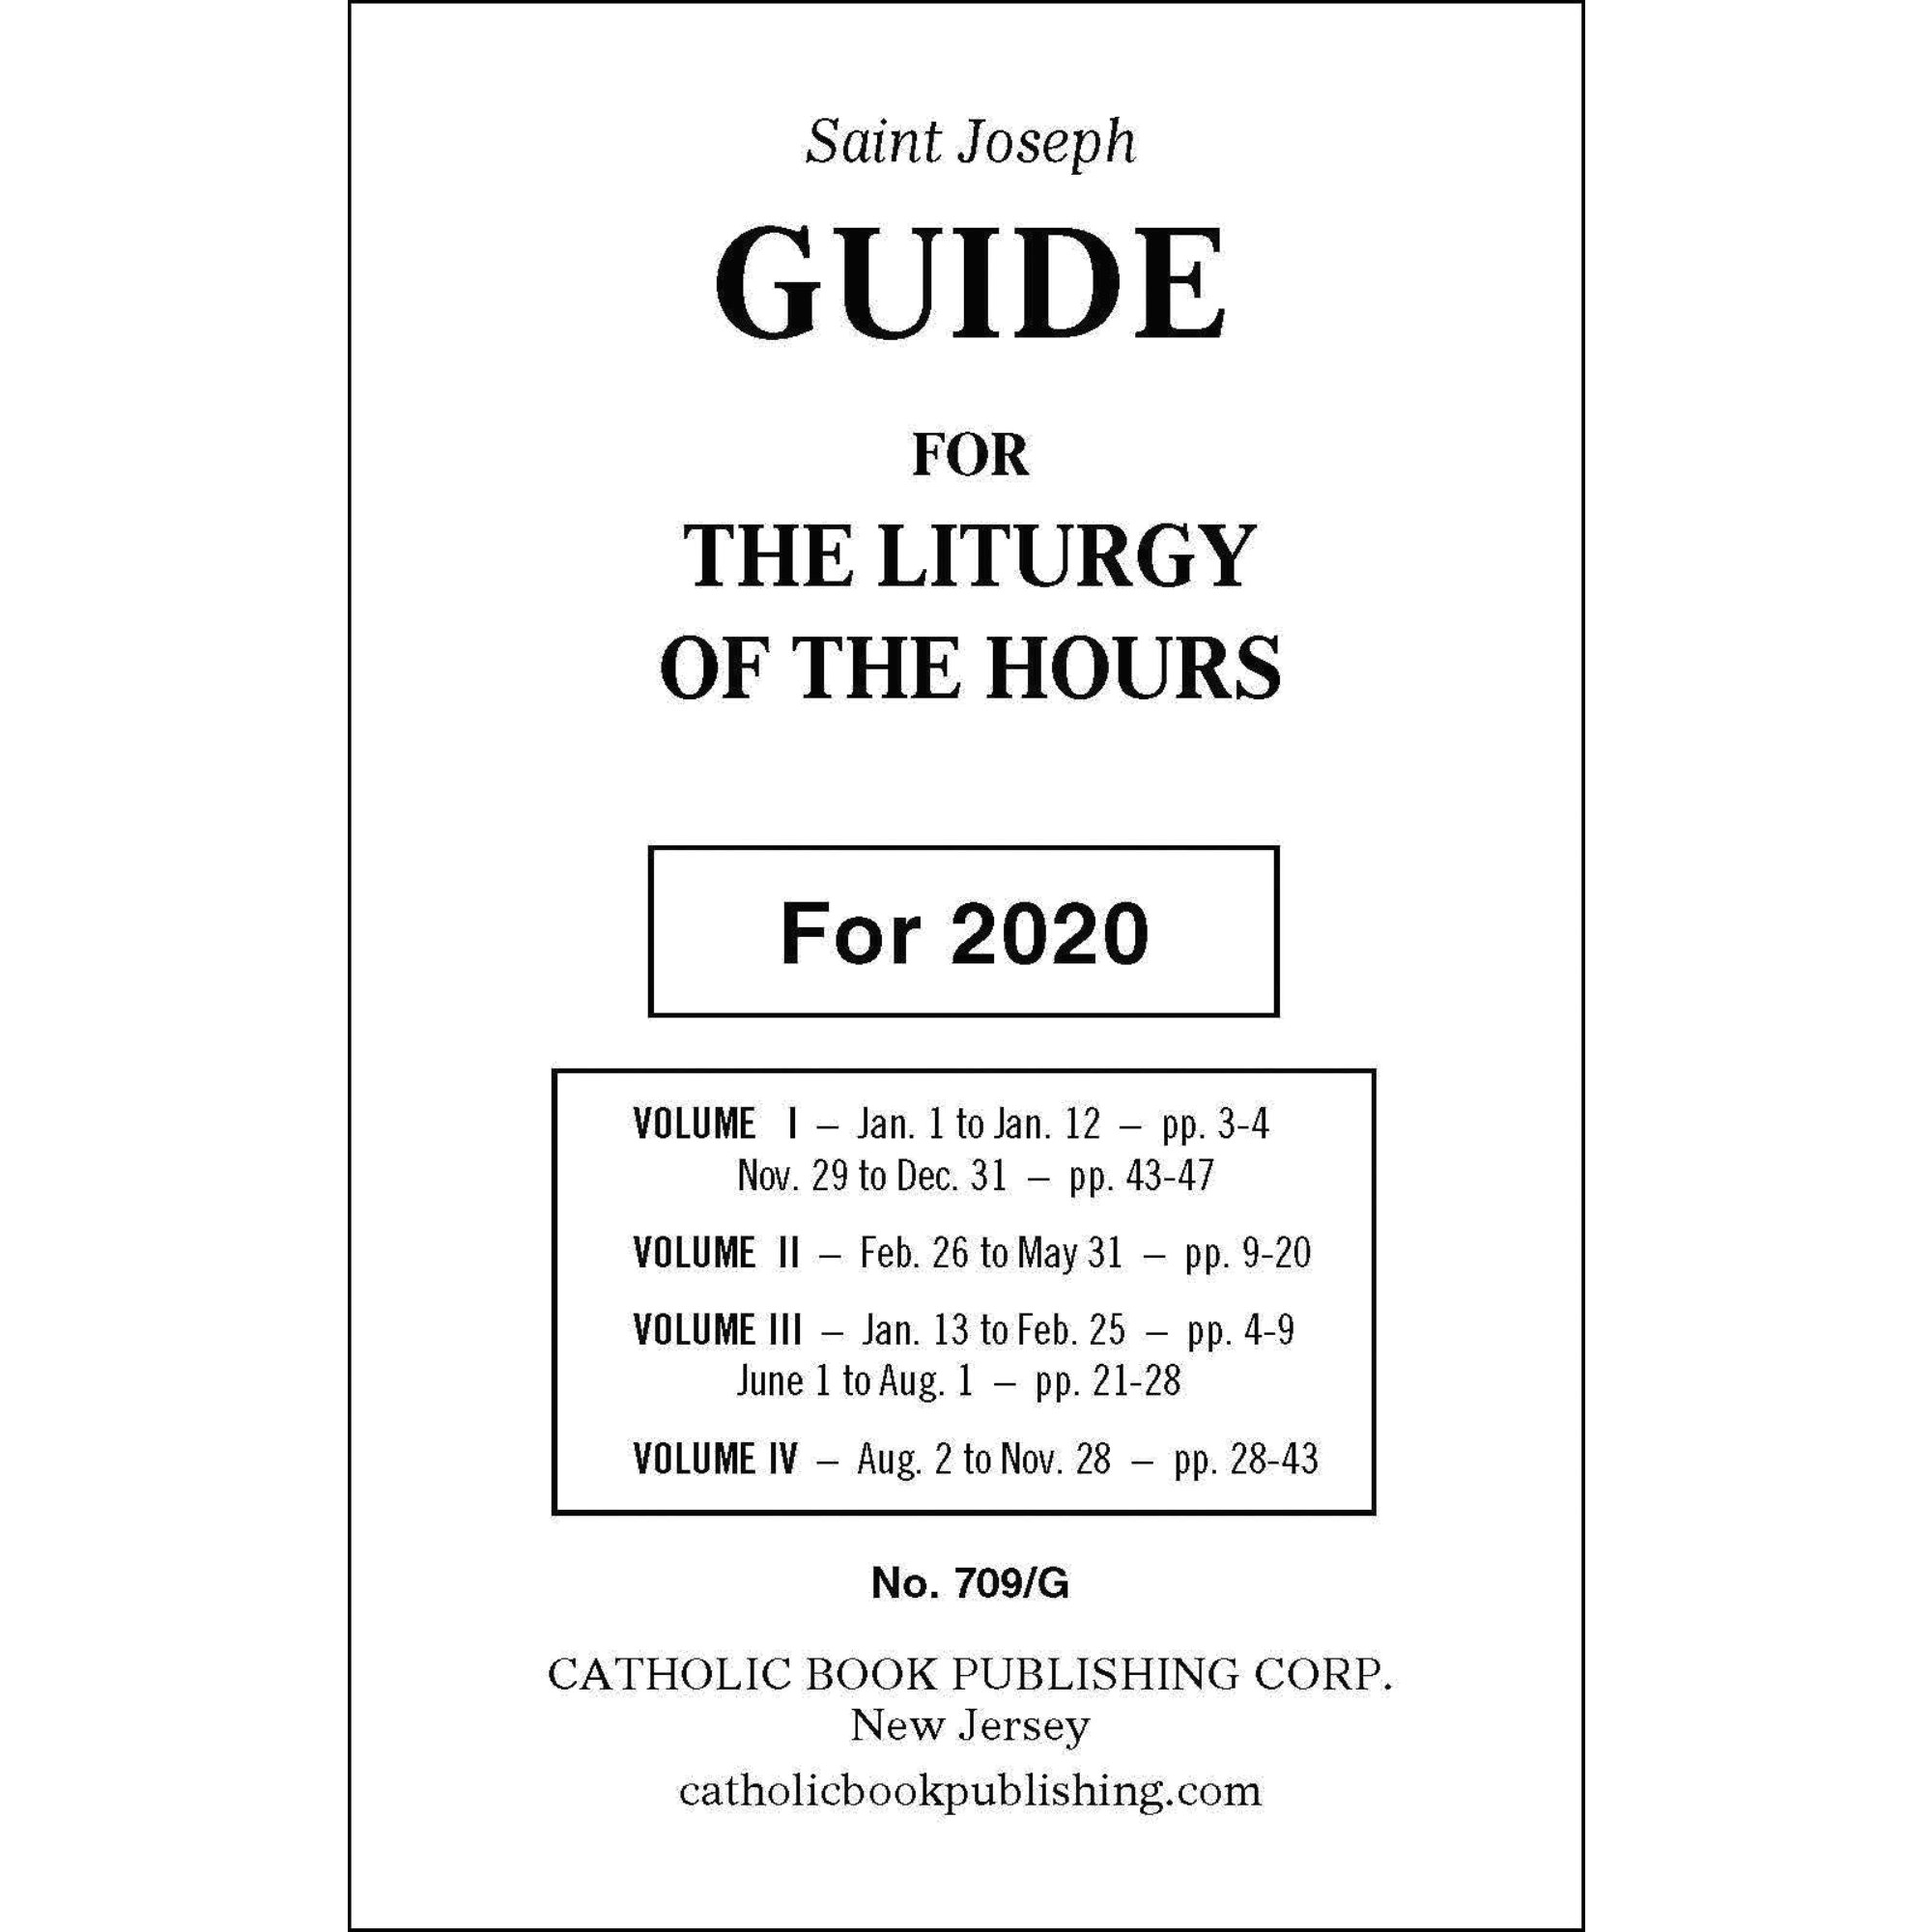 St. Joseph Guide For The Liturgy Of The Hours 2020 (Large Print) Pertaining To Liturgy Of The Hours Printable